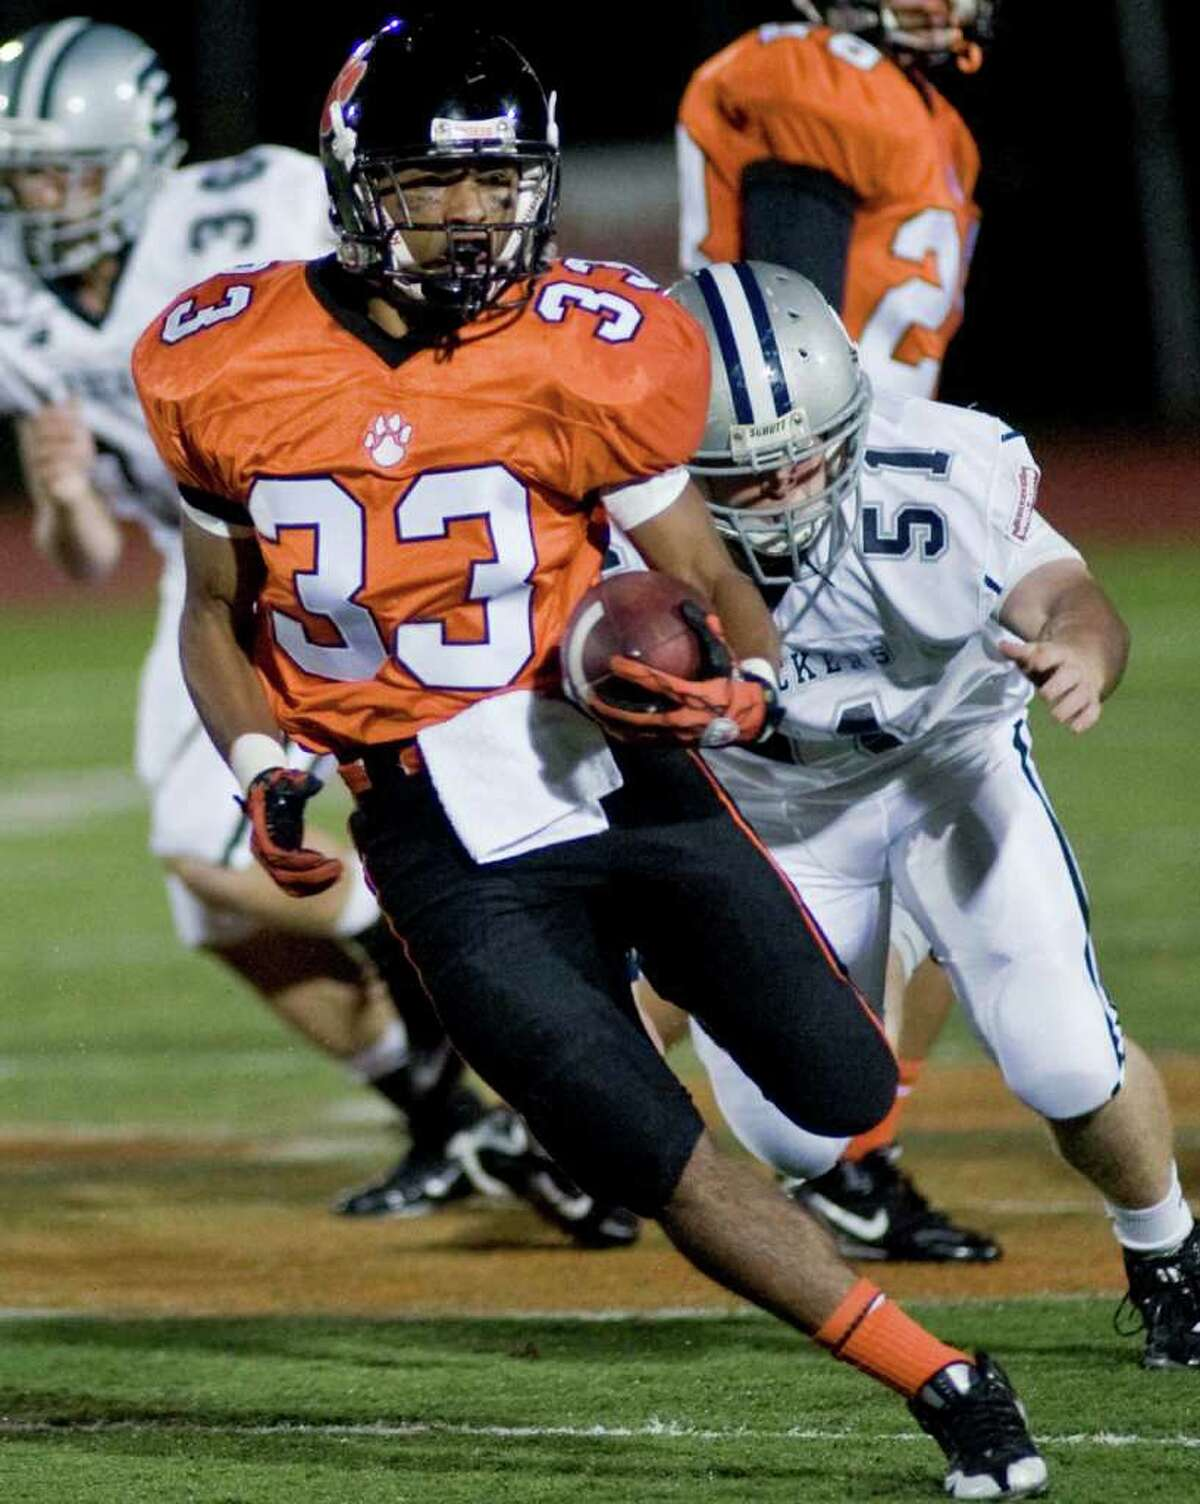 Ridgefield's Bryan Jimenez cuts to avoid Staples' Mike Giunta during a football game at Ridgefield. Friday, Oct. 1, 2010